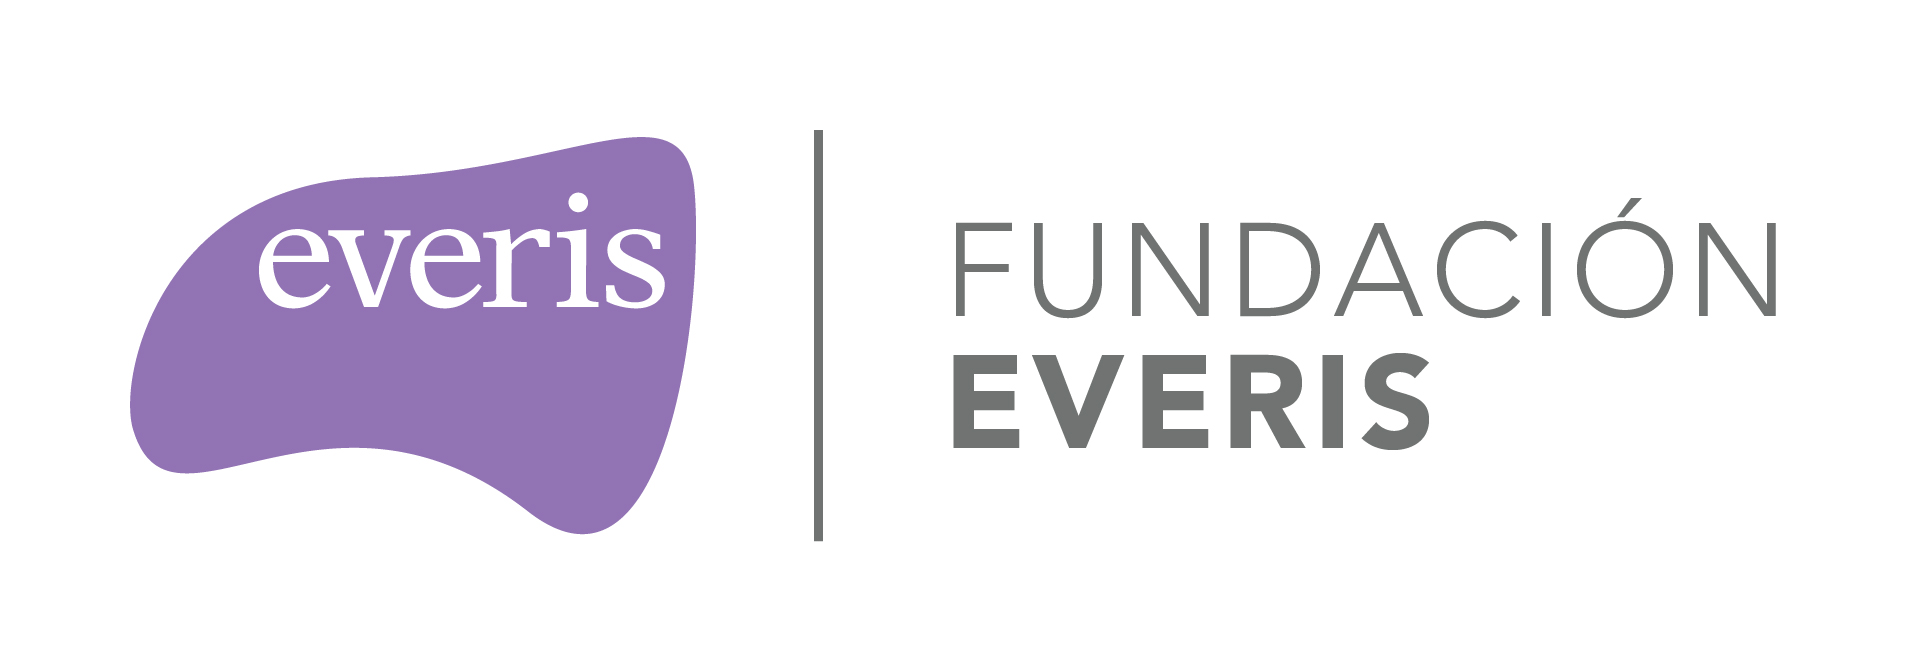 everis-fundacion-logo